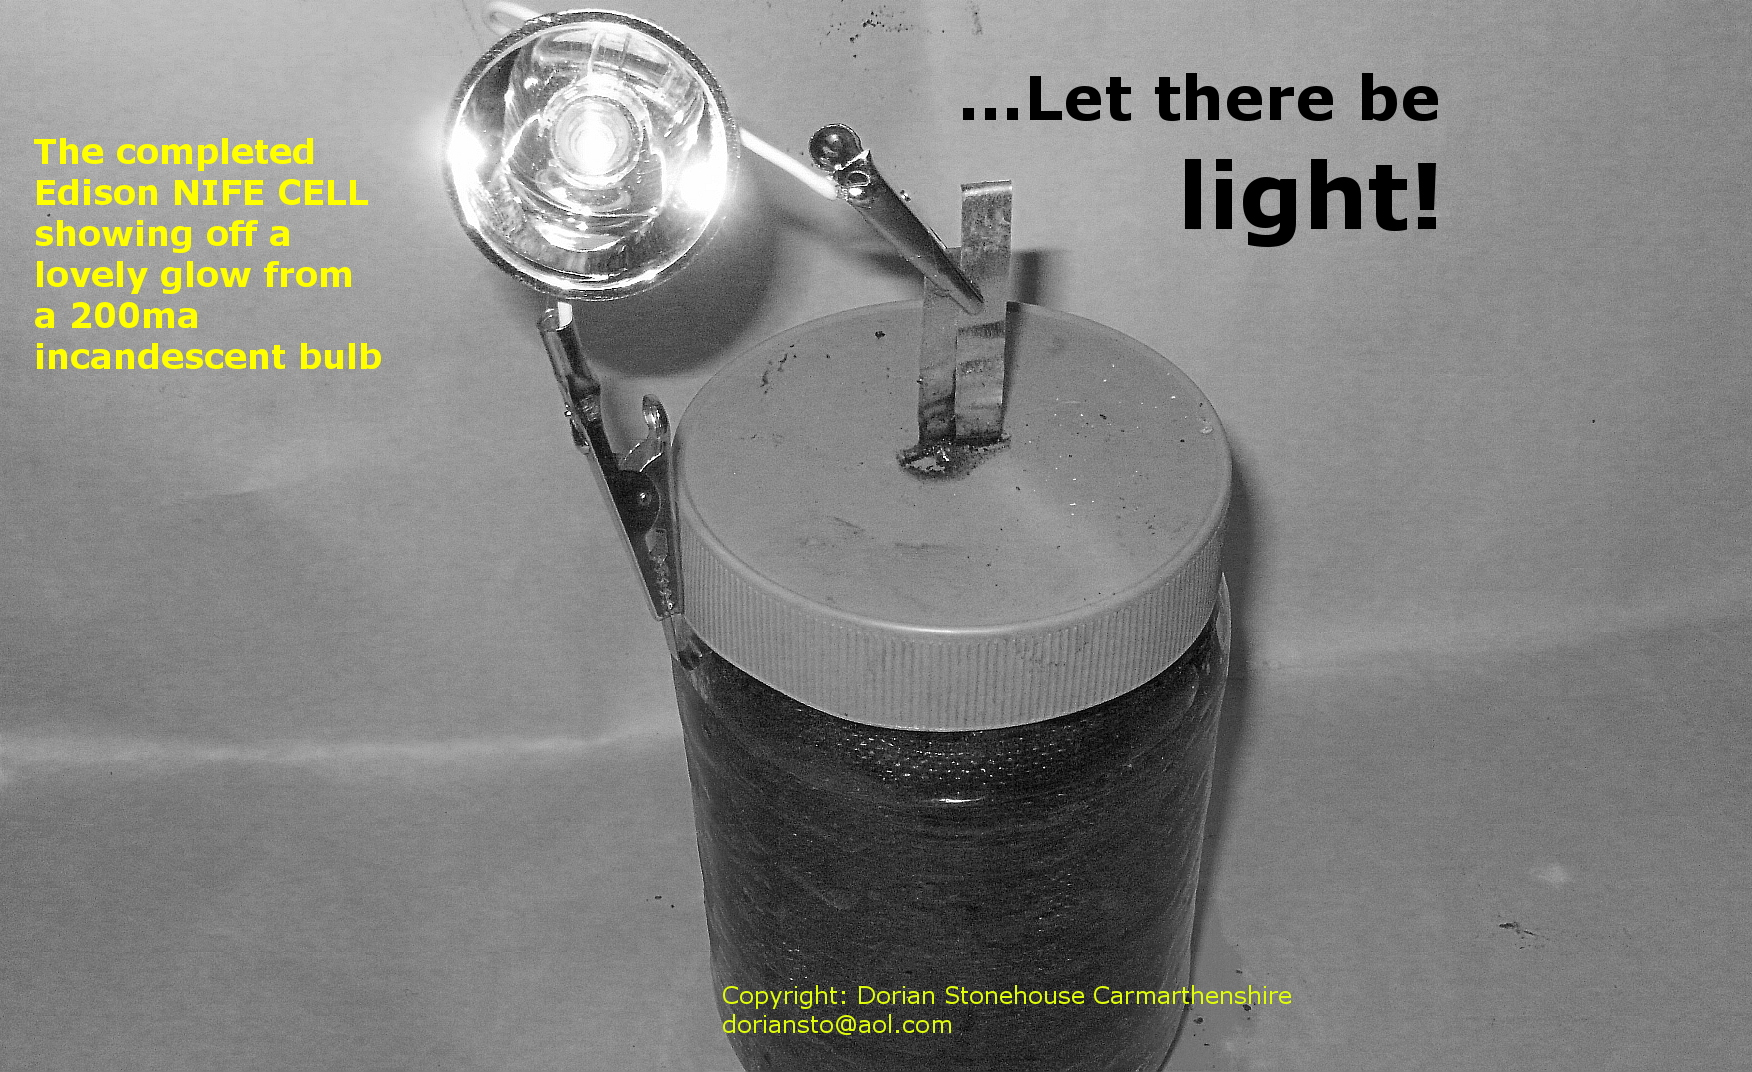 Success: A second glowing Edison cell in black and white.